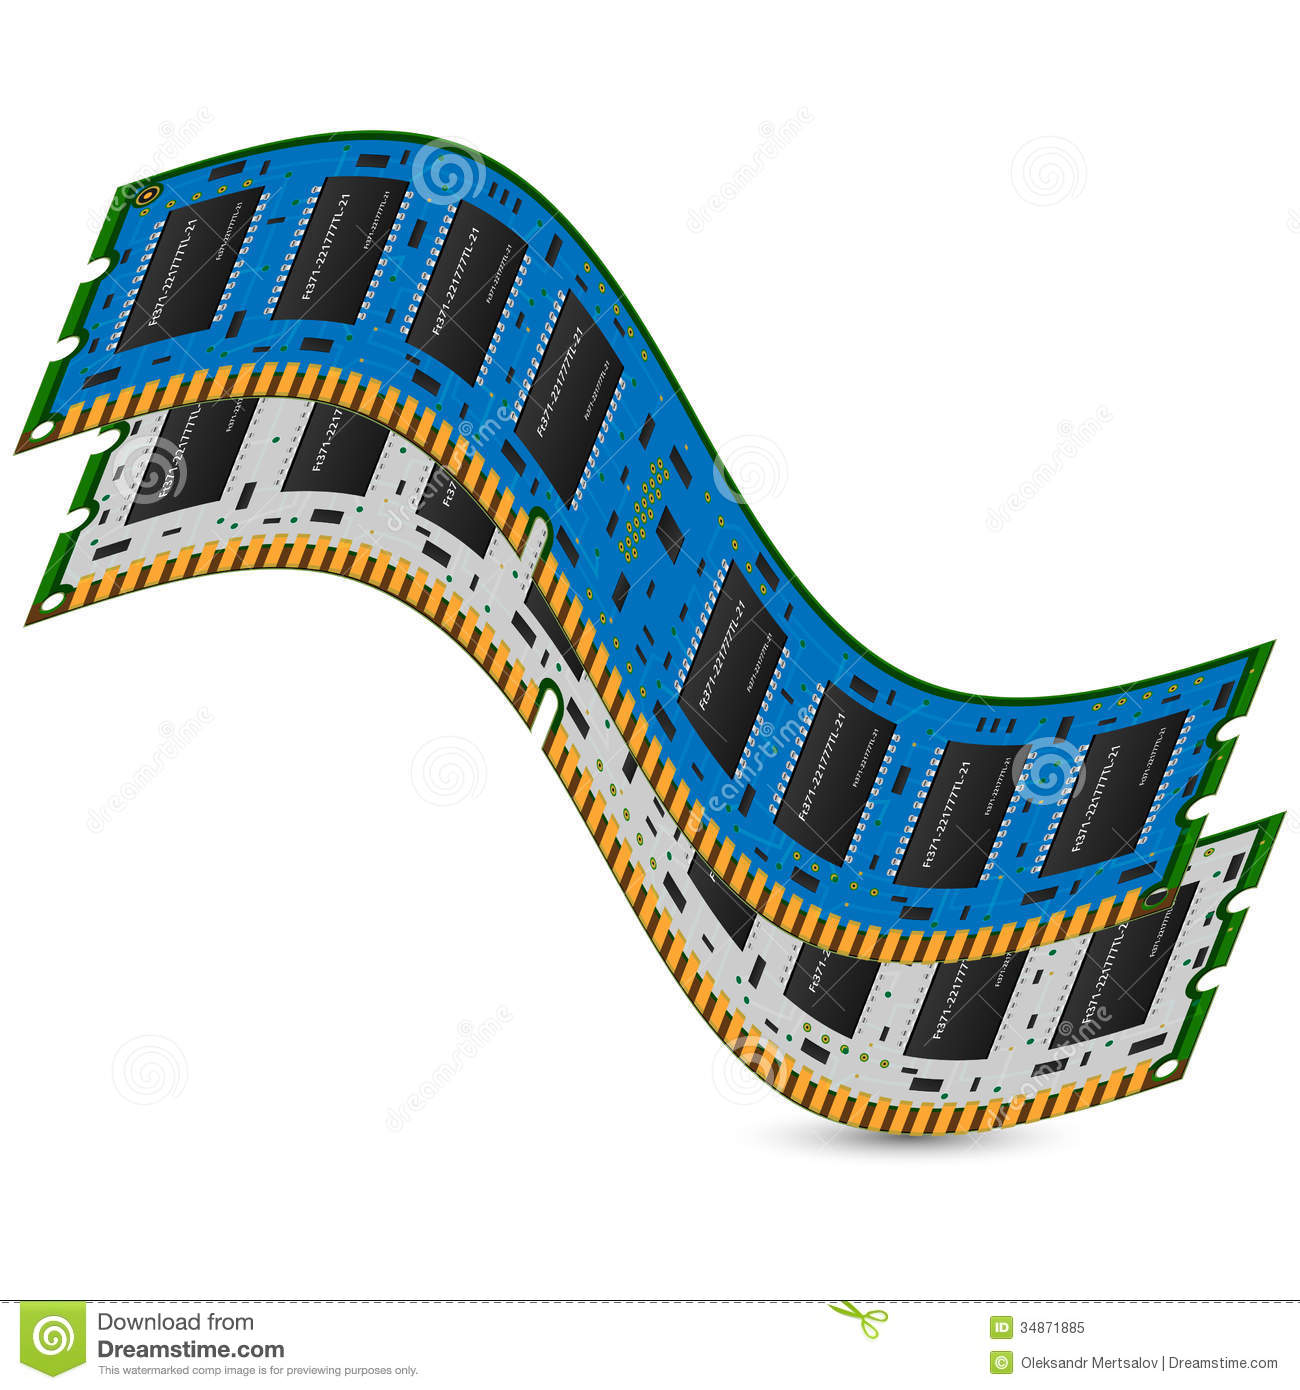 Computer Memory Stock Illustration Of Background Ram Chips With Binary Code A Circuit Board Microchip Electronics Chip In Computers